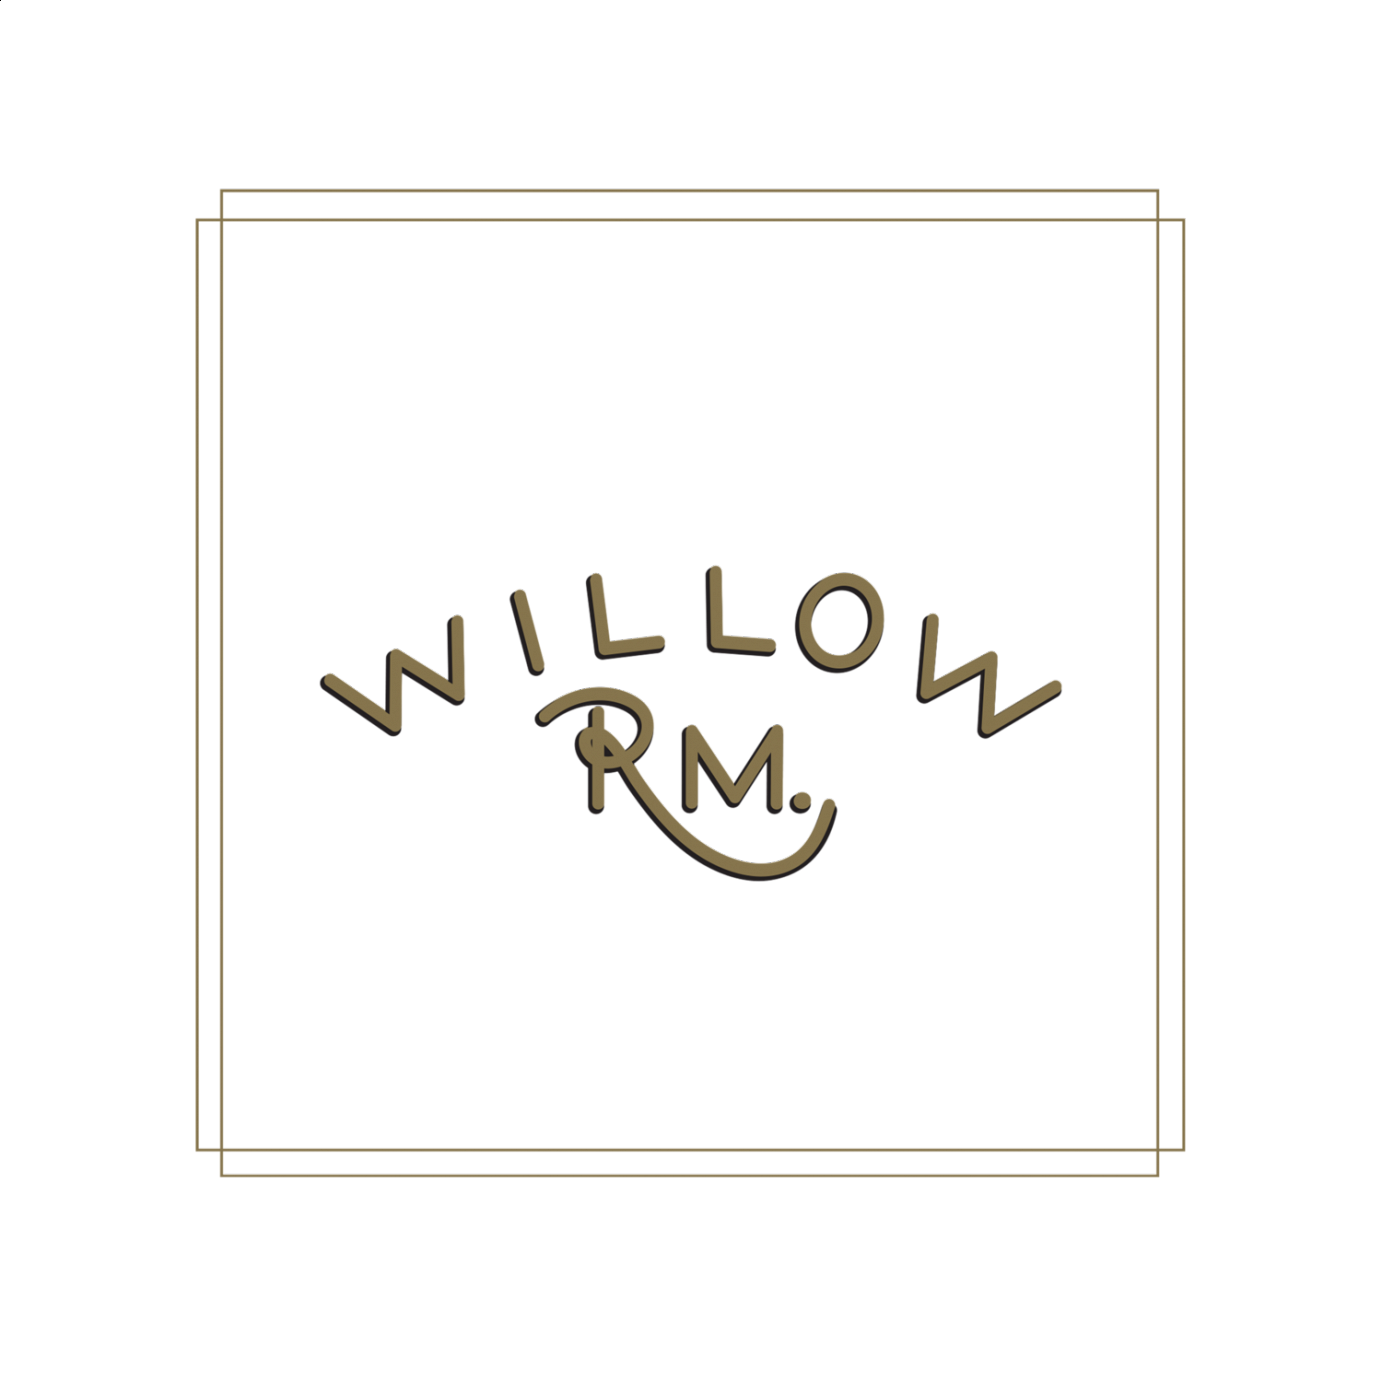 Willow Room logo scroll